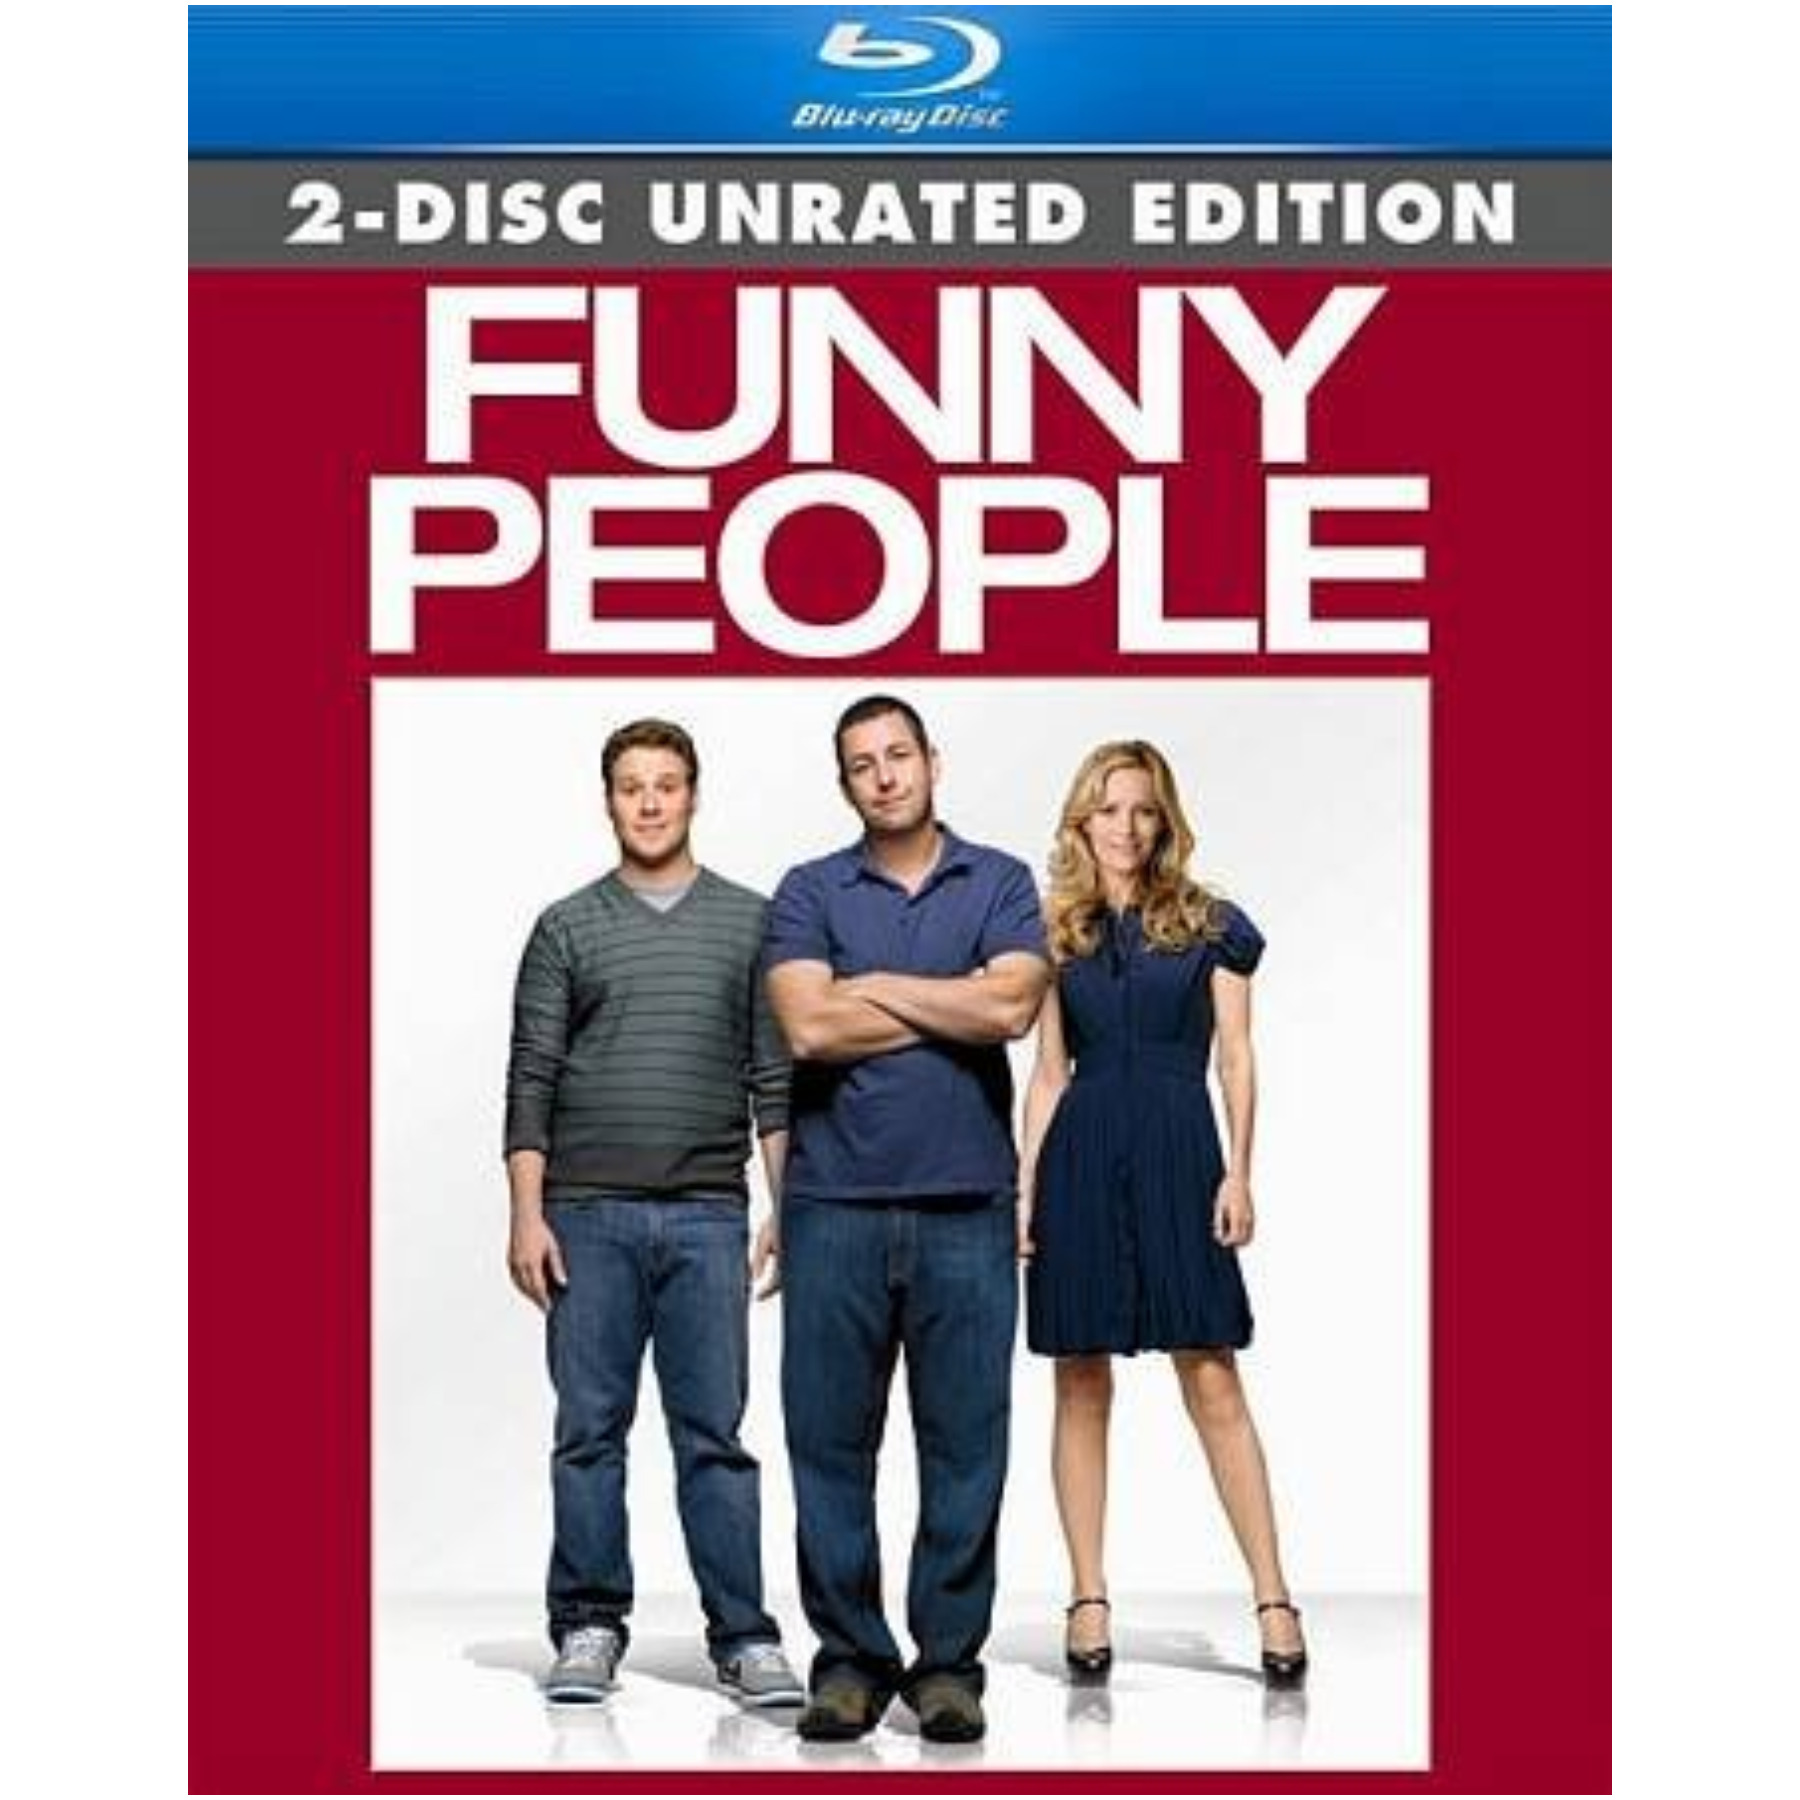 Funny People Blu Ray 2discs/Eng Sdh/Span/Fren/Dts-Hd/Dol Dig 2.0 025195053723